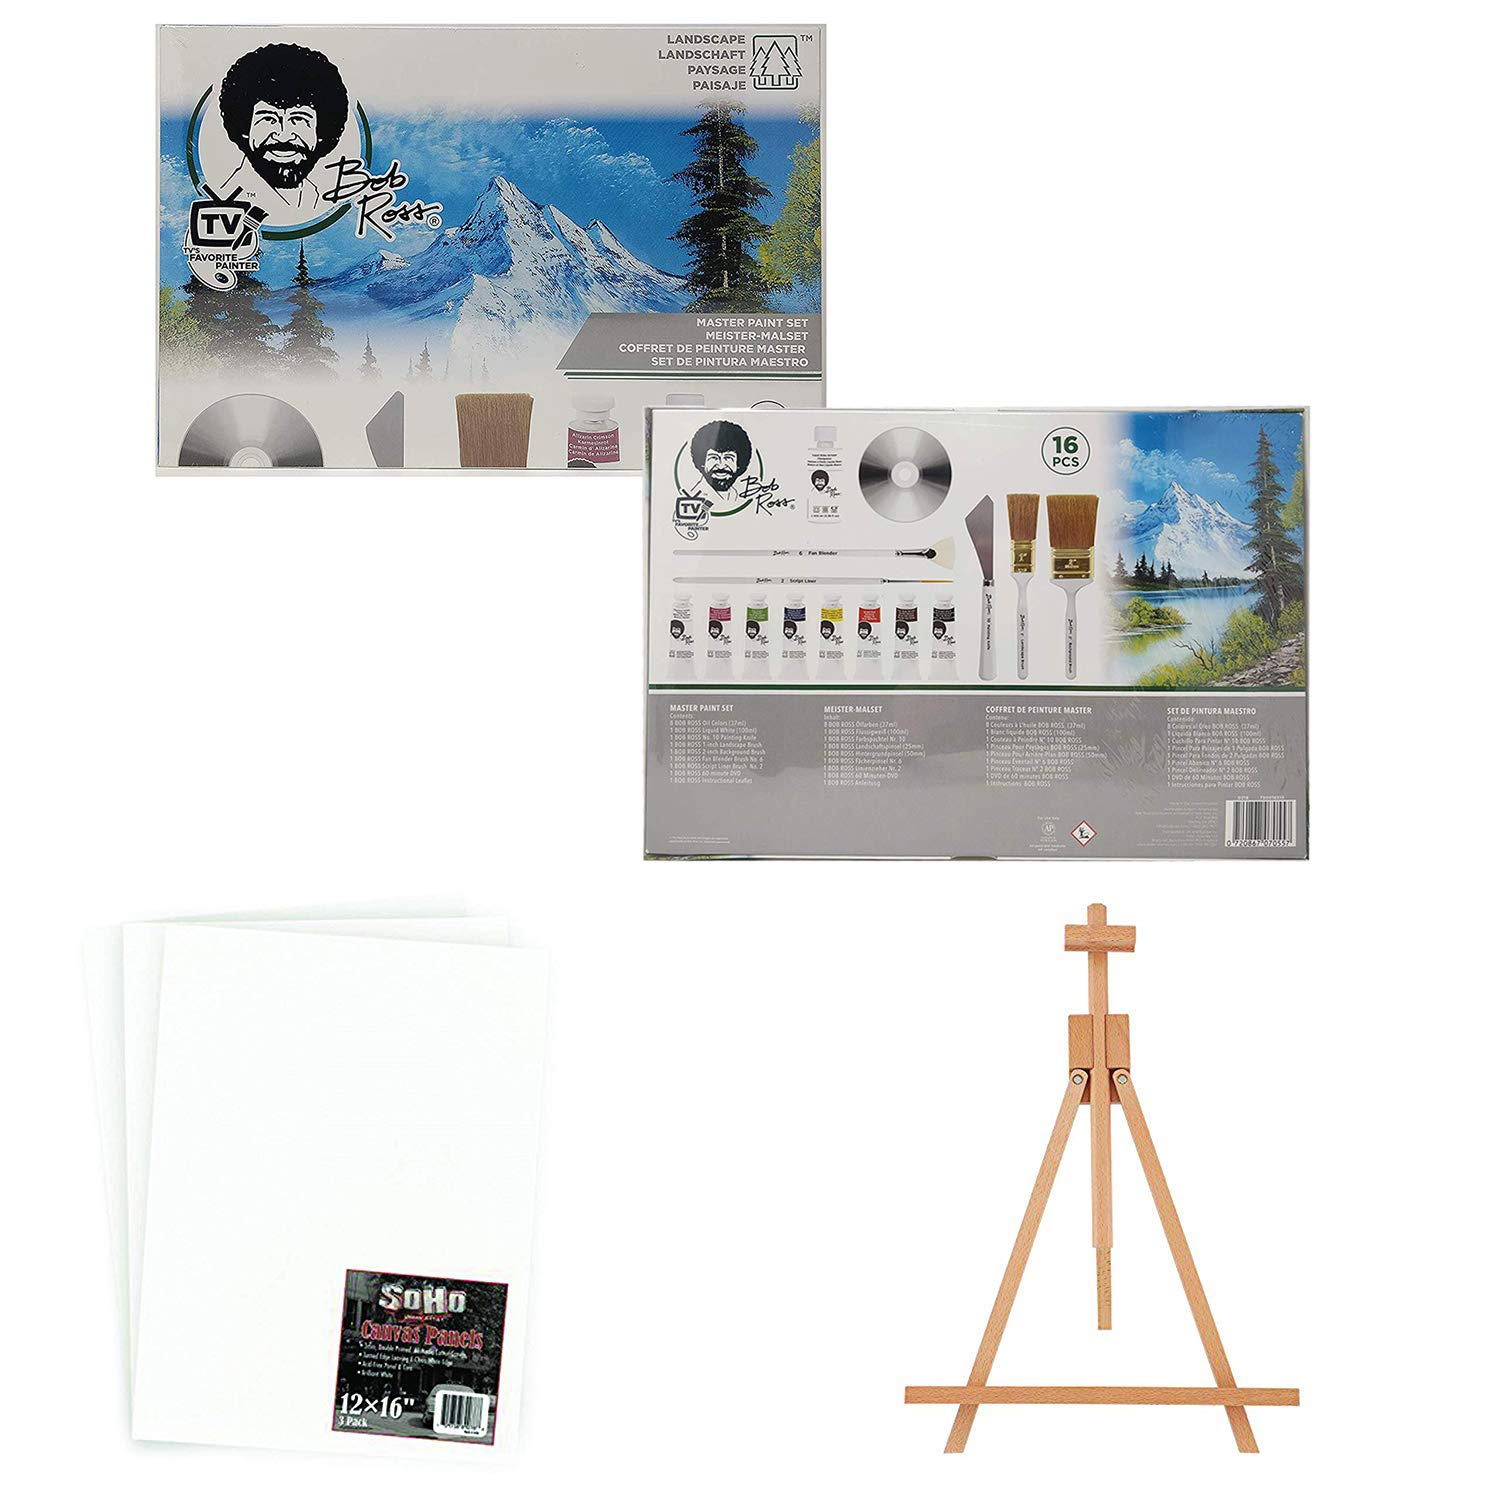 Bob Ross Master Artist Oil Paint Set Bundle with Wood Tabletop Travel Art Easel and Canvas Panels (3pk) - 12x16 (3 Items) by JERRY'S ARTARAMA